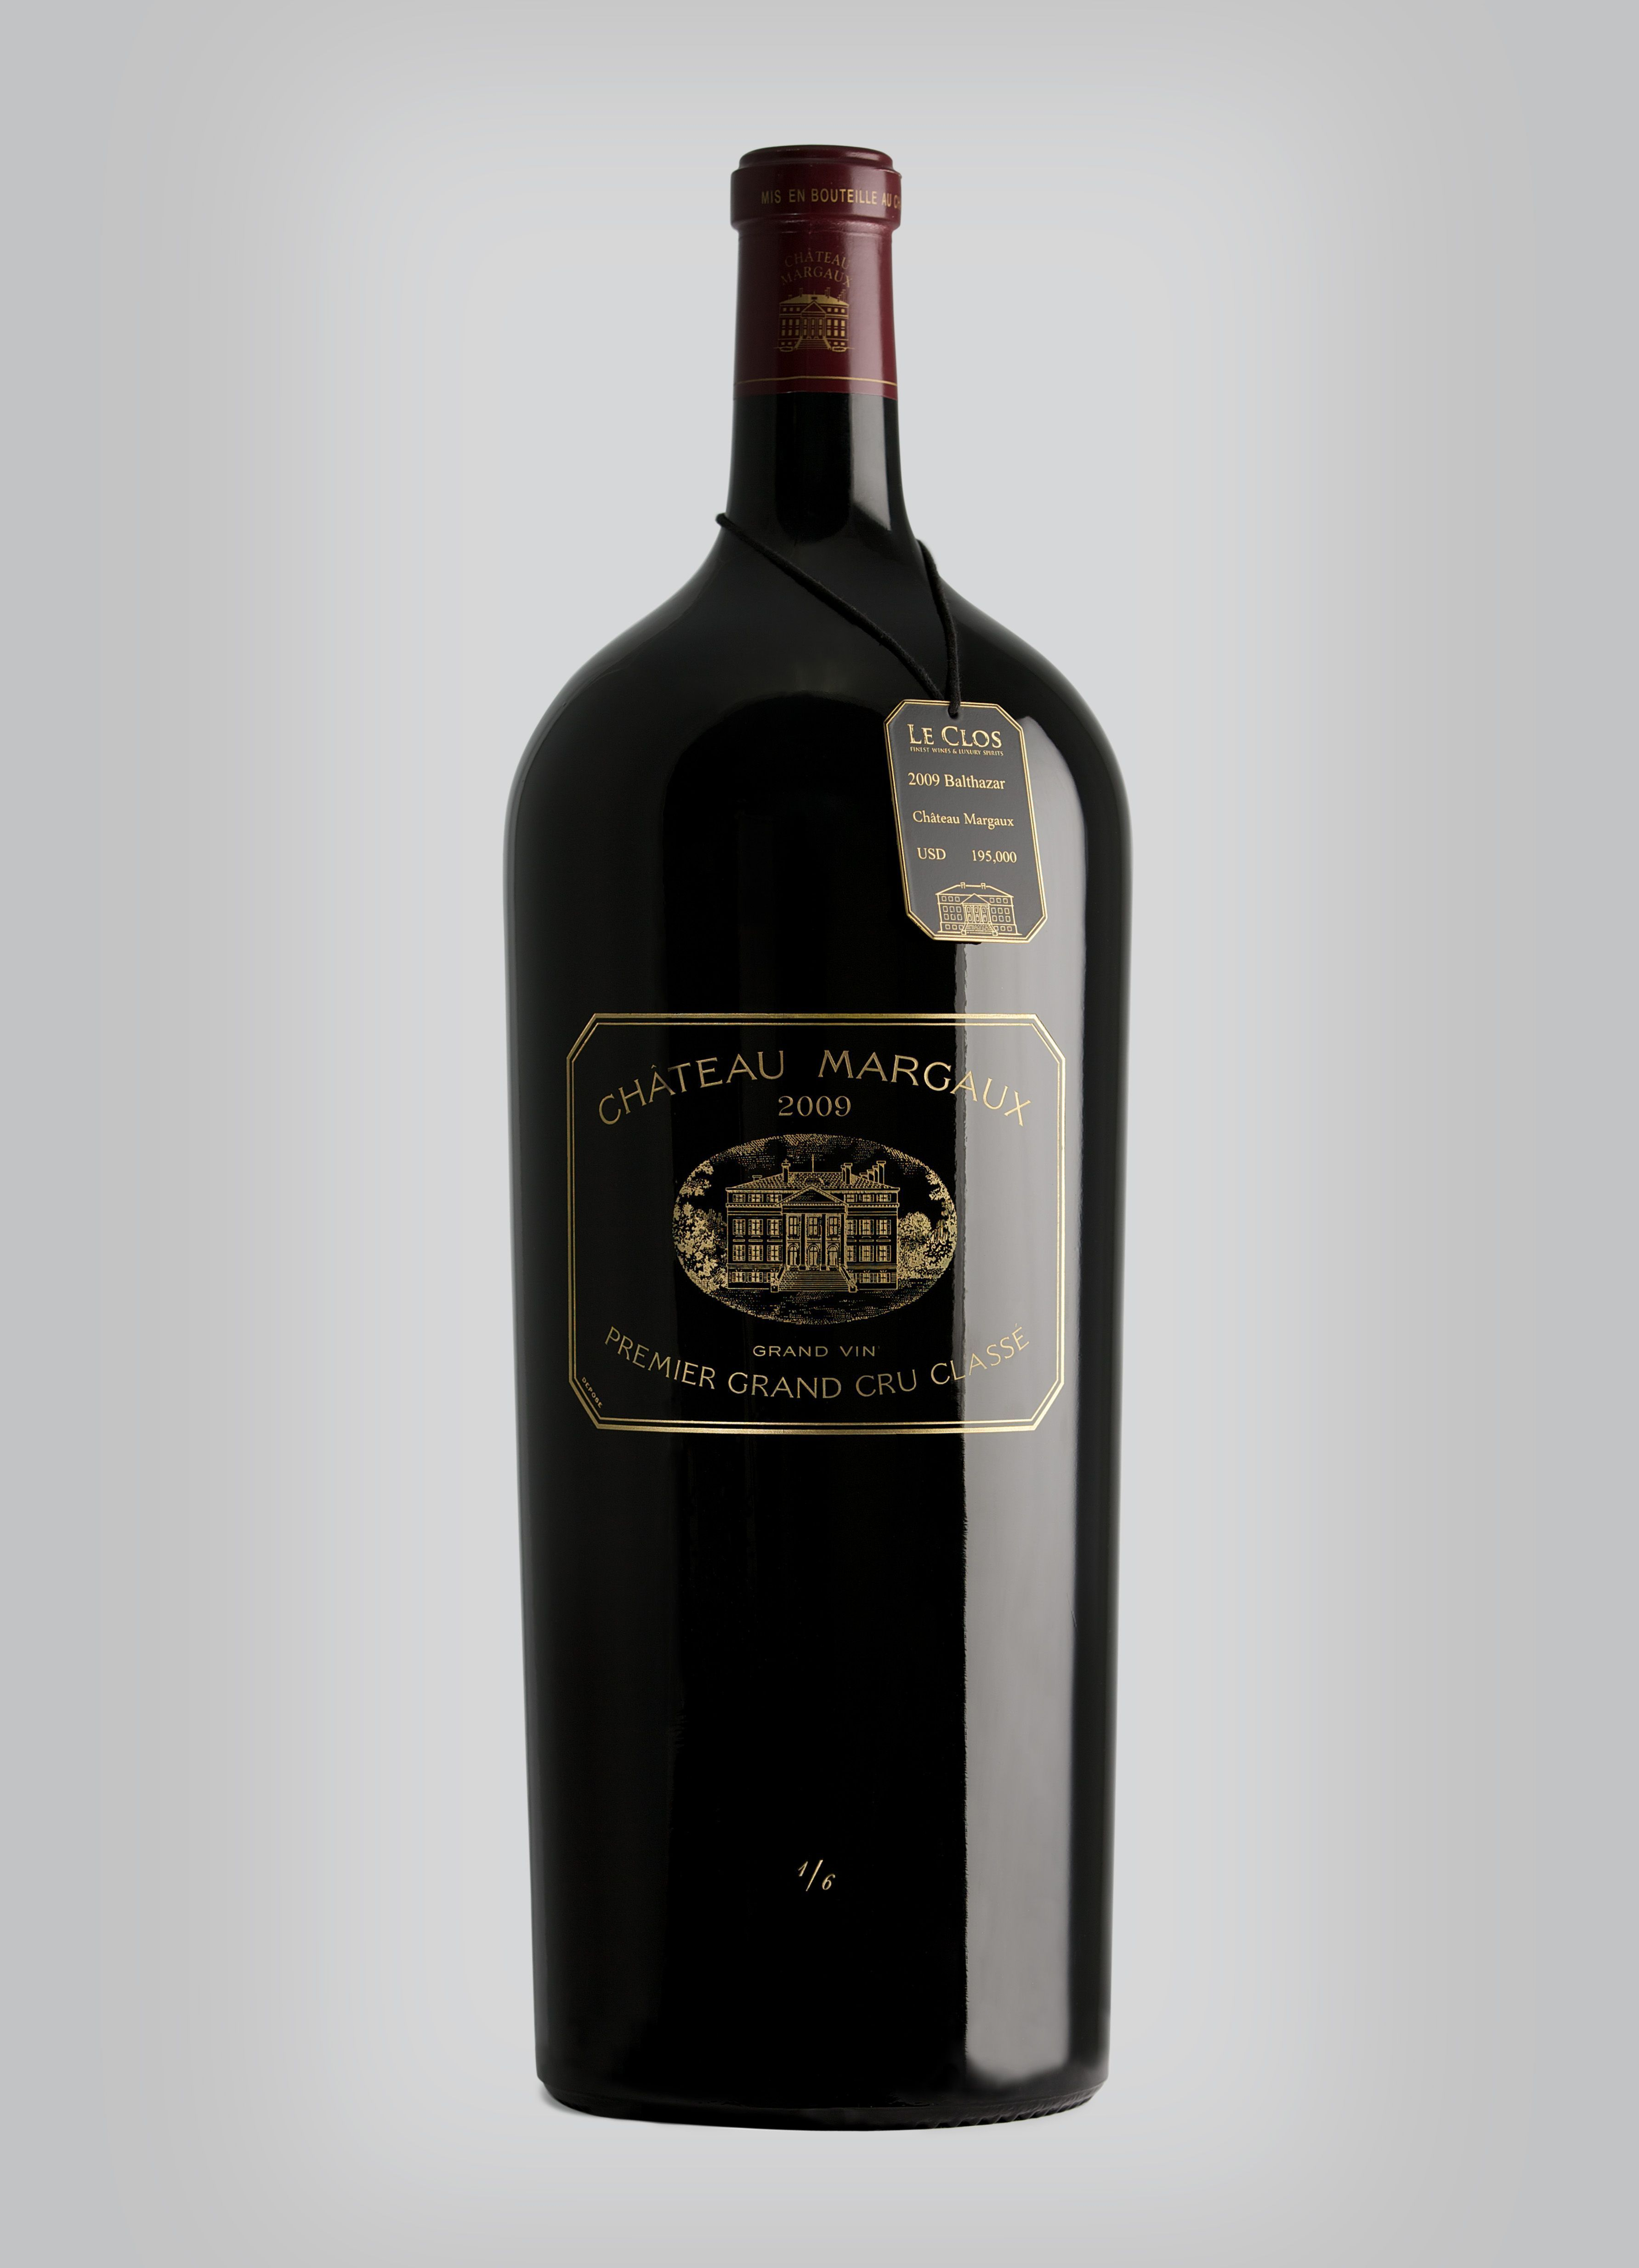 Le Clos Retails Most Expensive Bottle of Red Wine